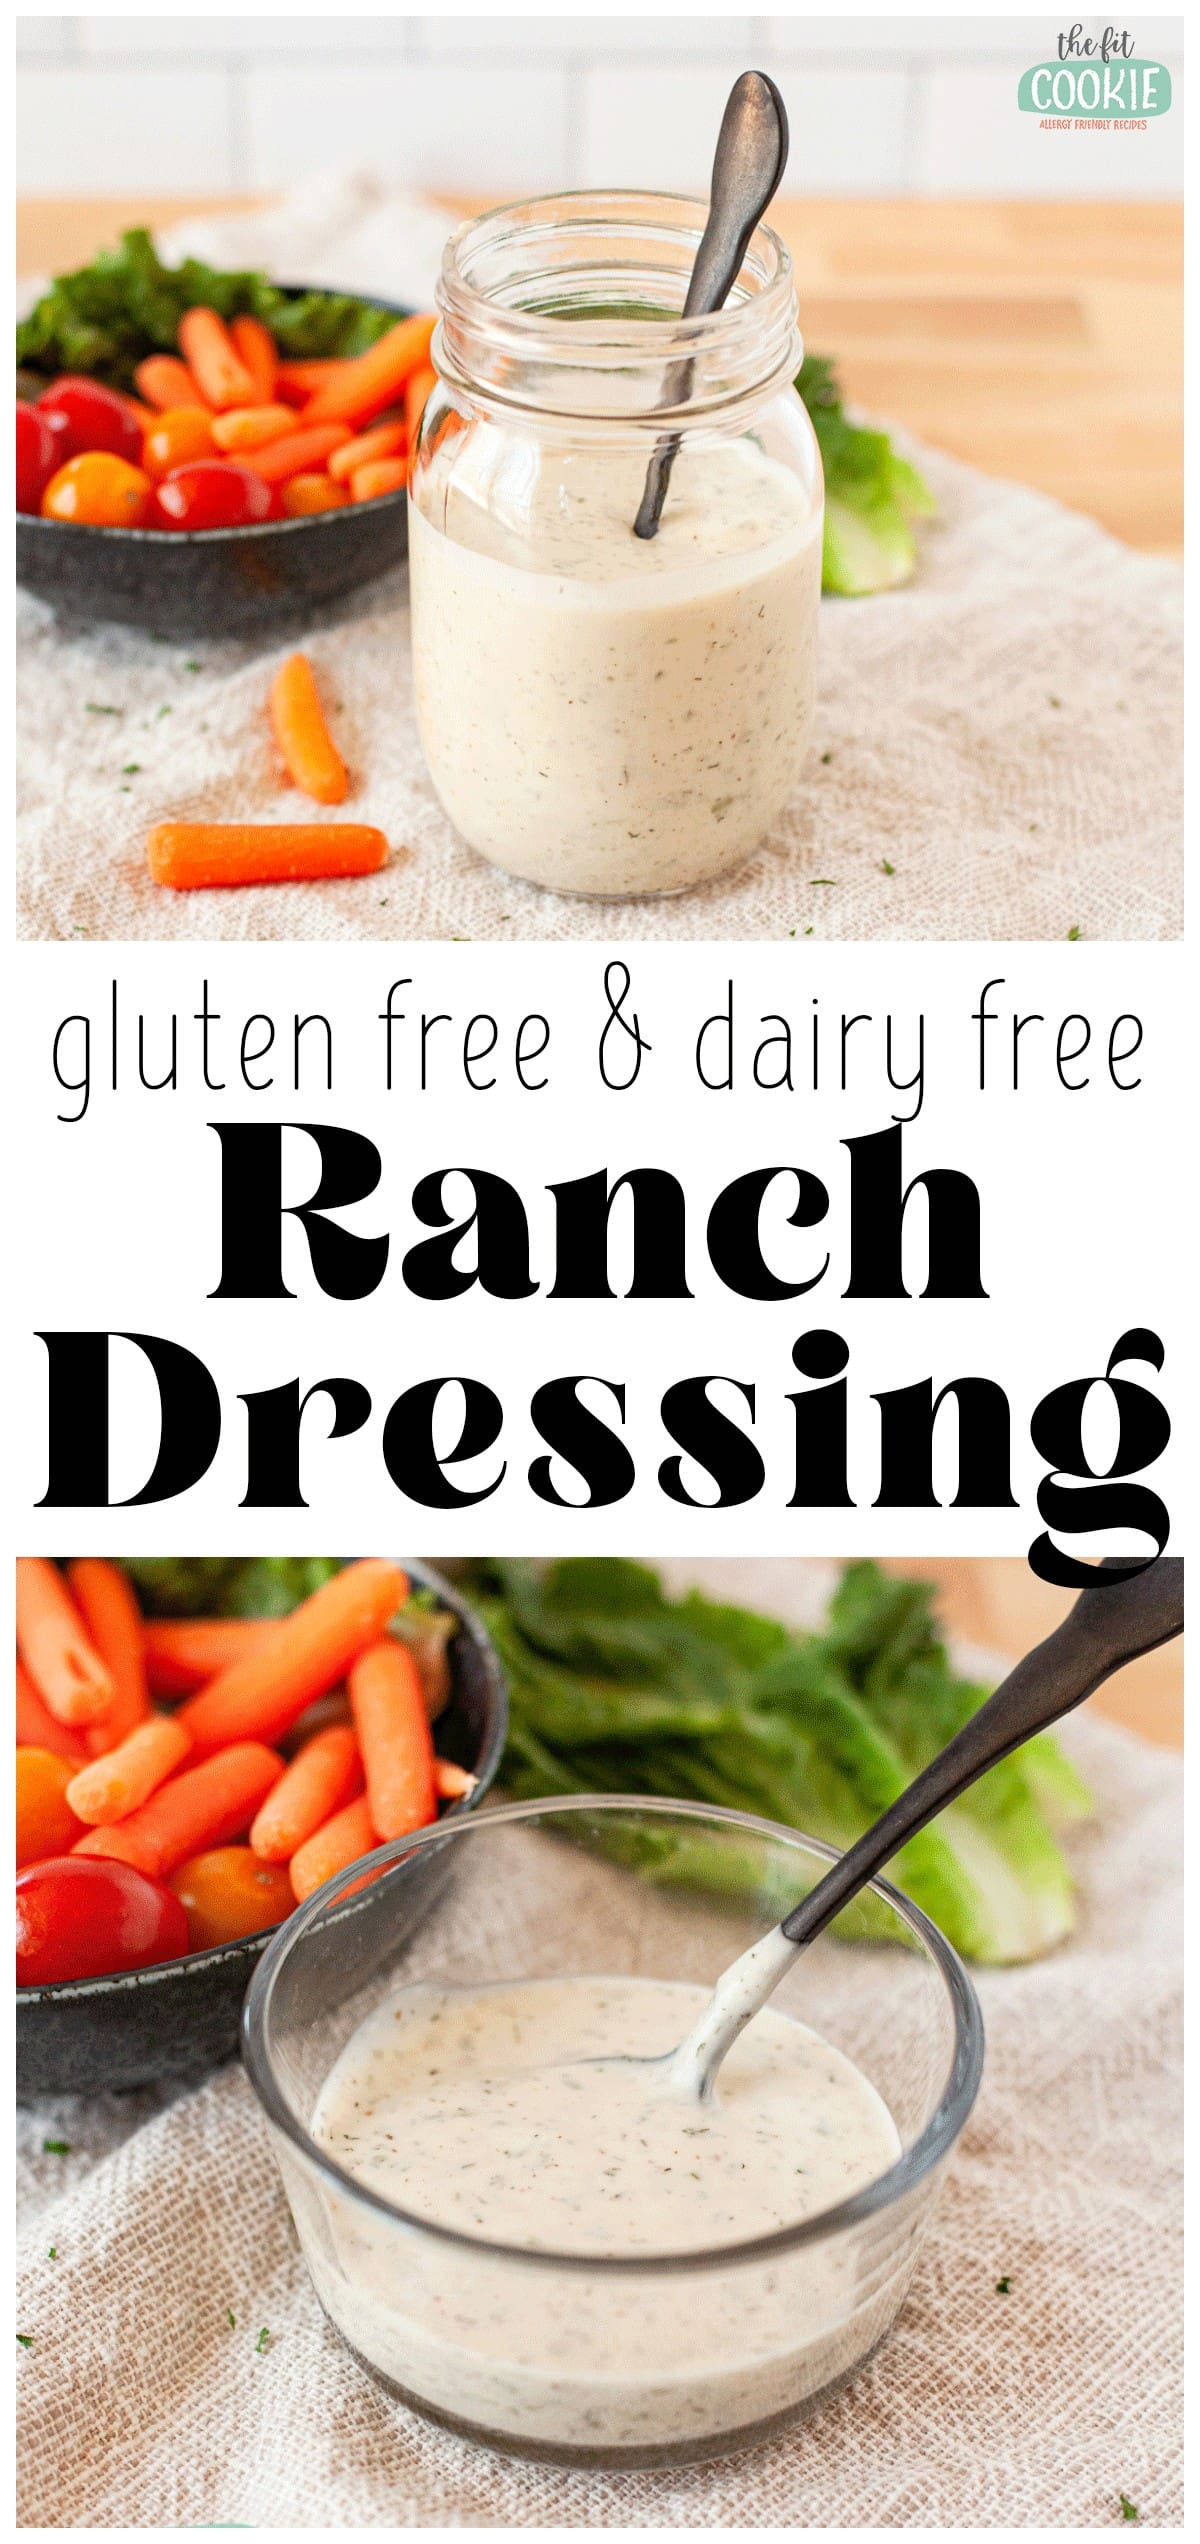 photo collage of dairy free ranch dressing in a glass jar